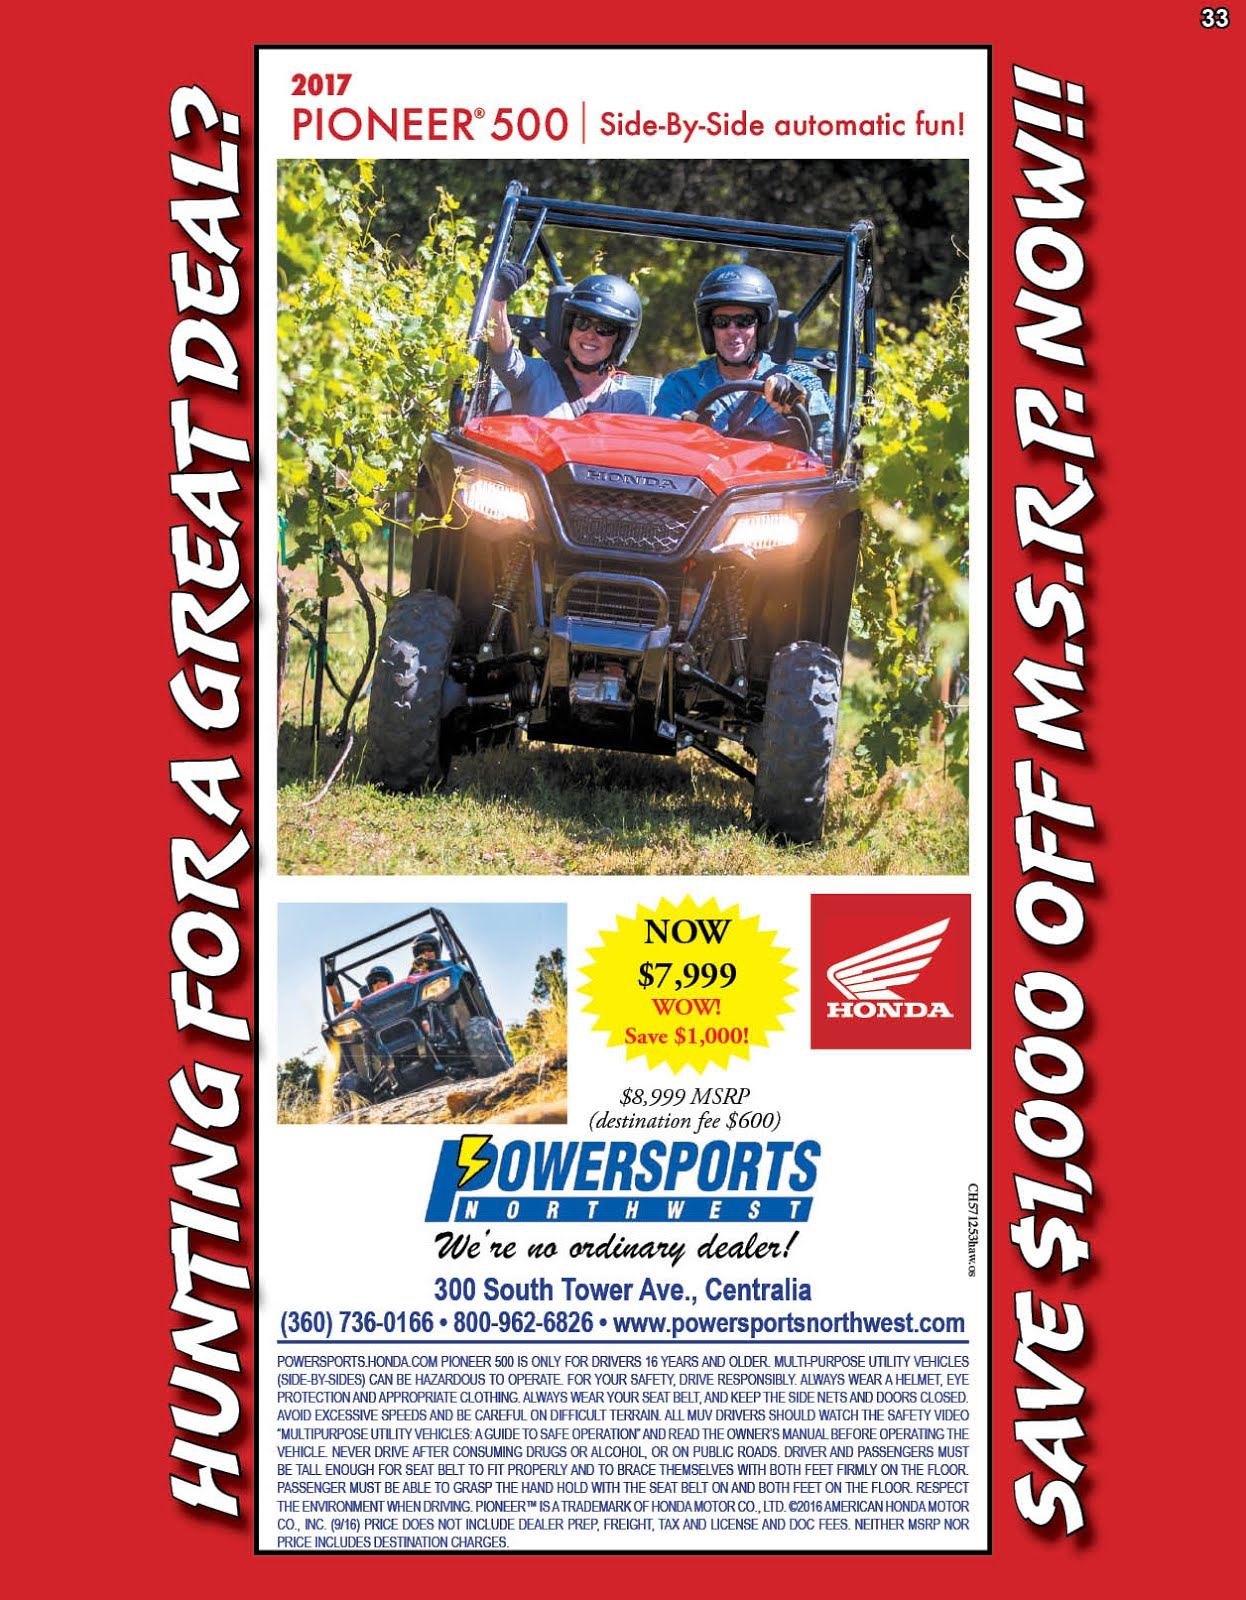 Powersports Northwest